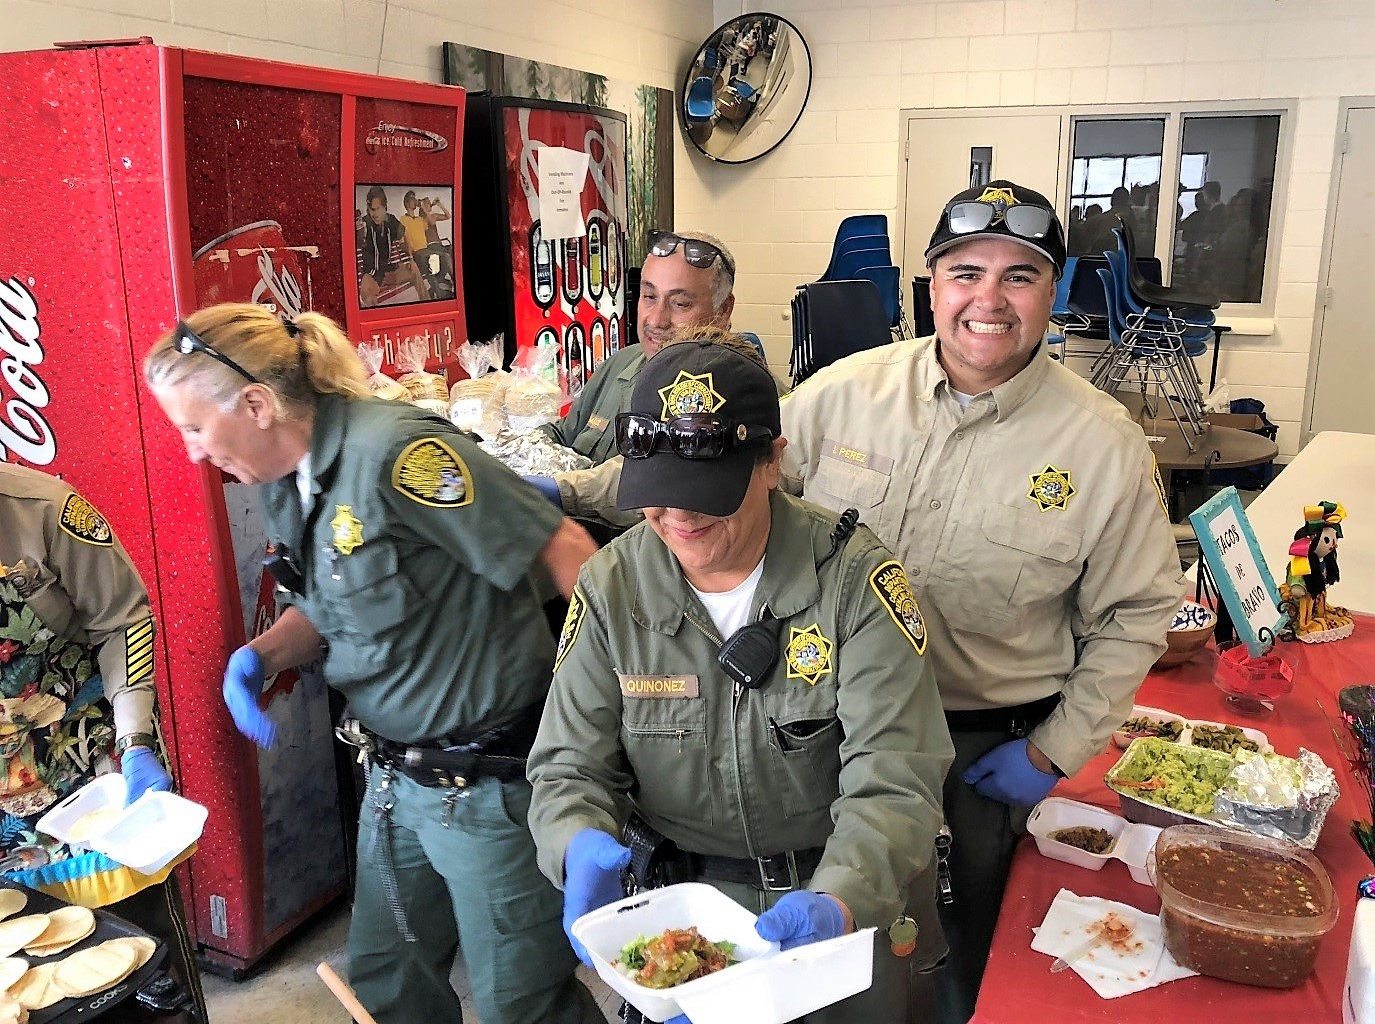 People in uniform load up tacos.